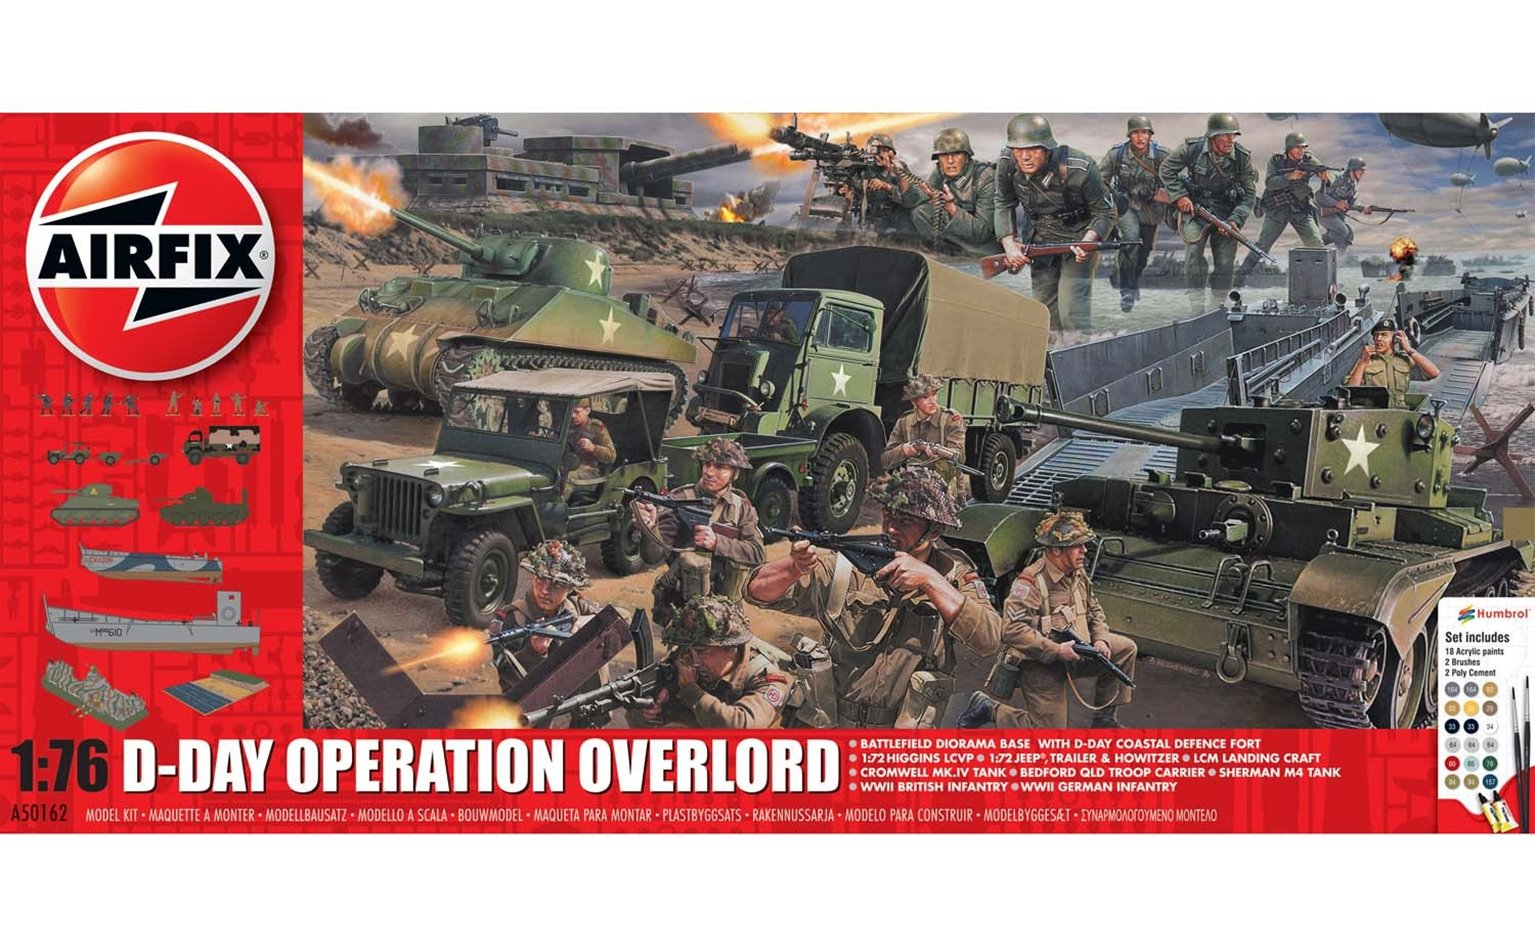 D-Day 75th Anniversary Operation Overlord